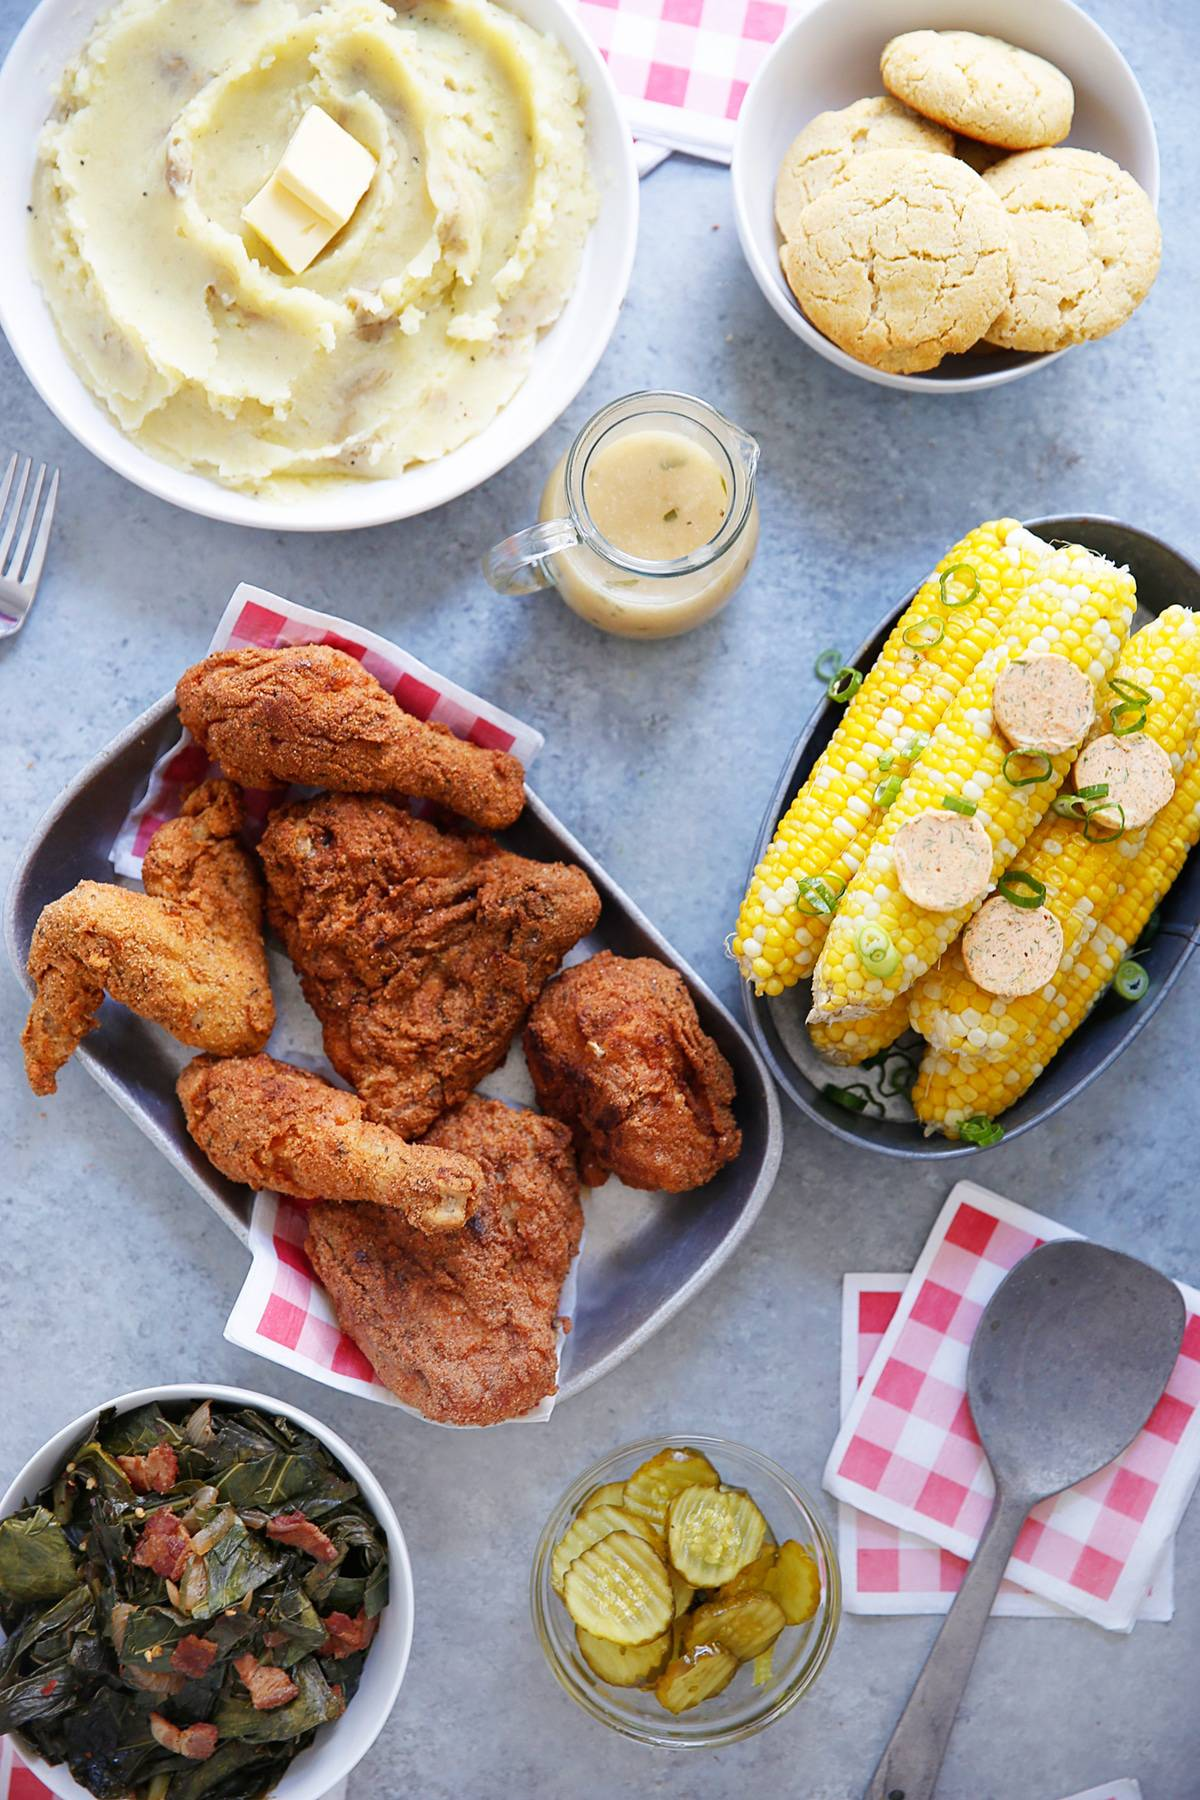 Southern Fried Chicken Meal